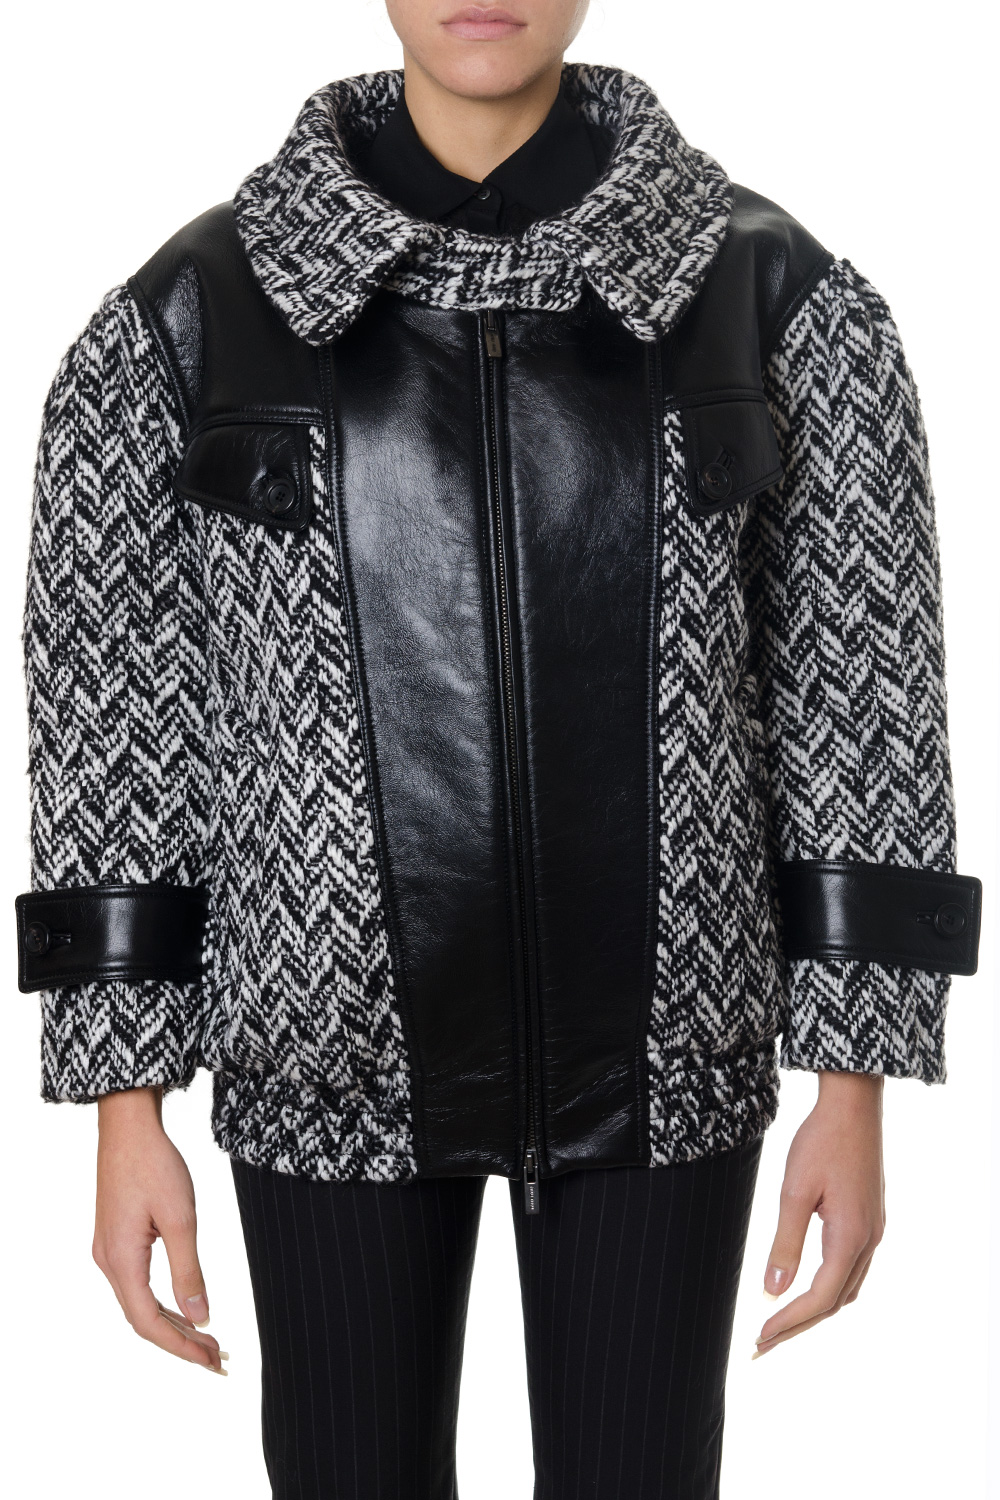 00d1ec1a3cb9 WOOL BLEND BOMBER JACKET WITH LEATHER INSERTS FW 2018 - MIU MIU - Boutique  Galiano